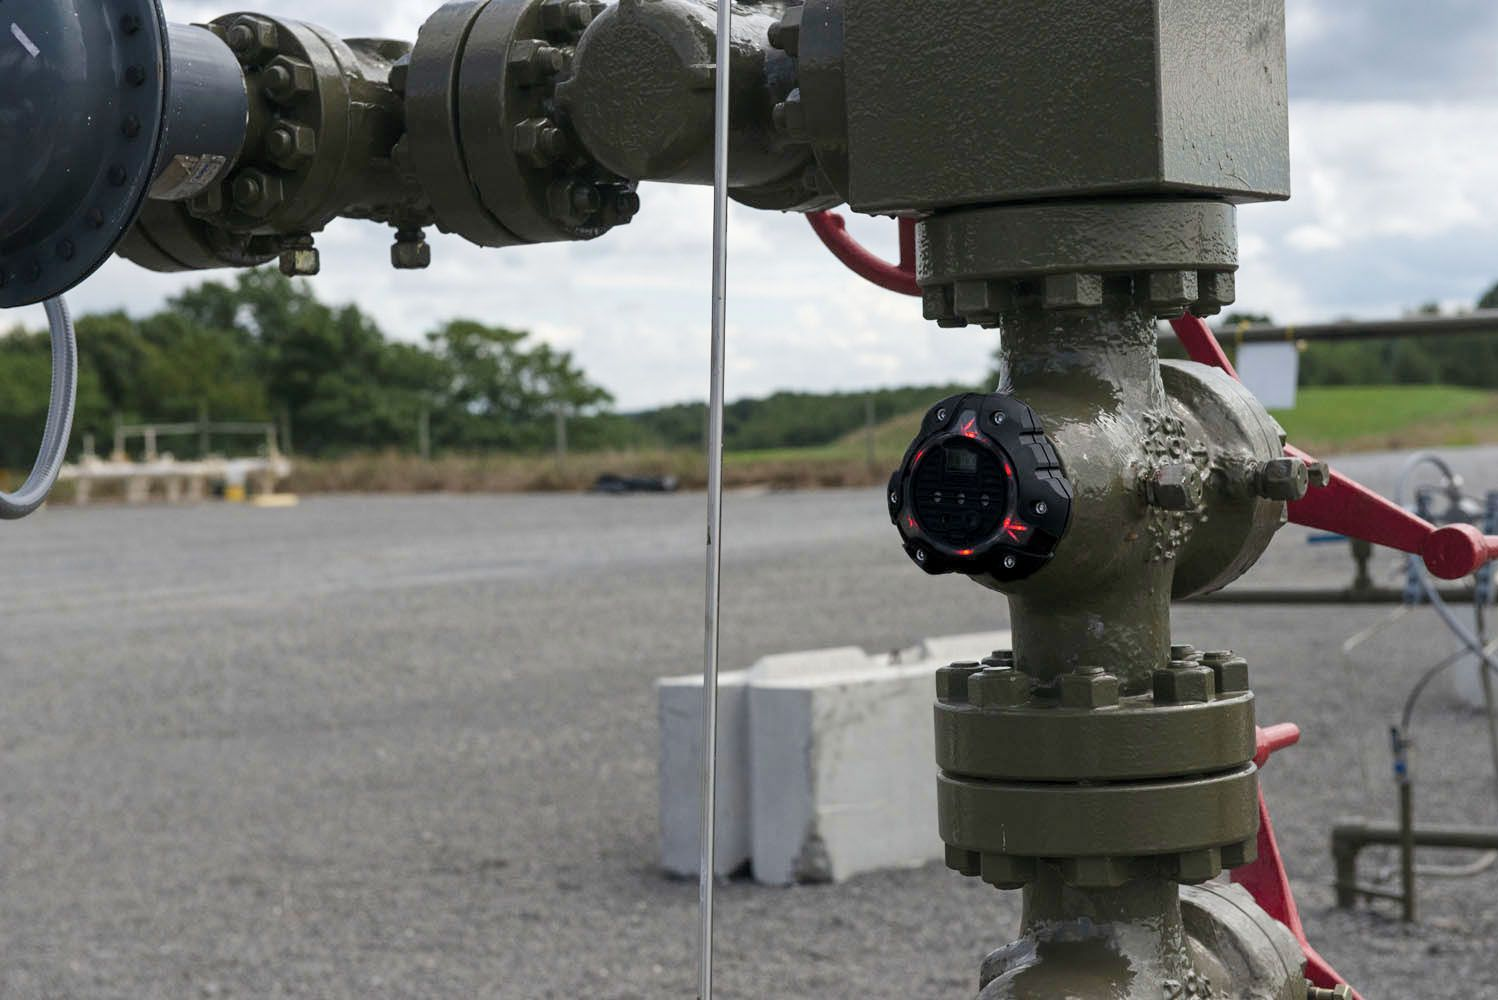 An ALTAIR io360 device blinks red to alert a worksite of a hazard